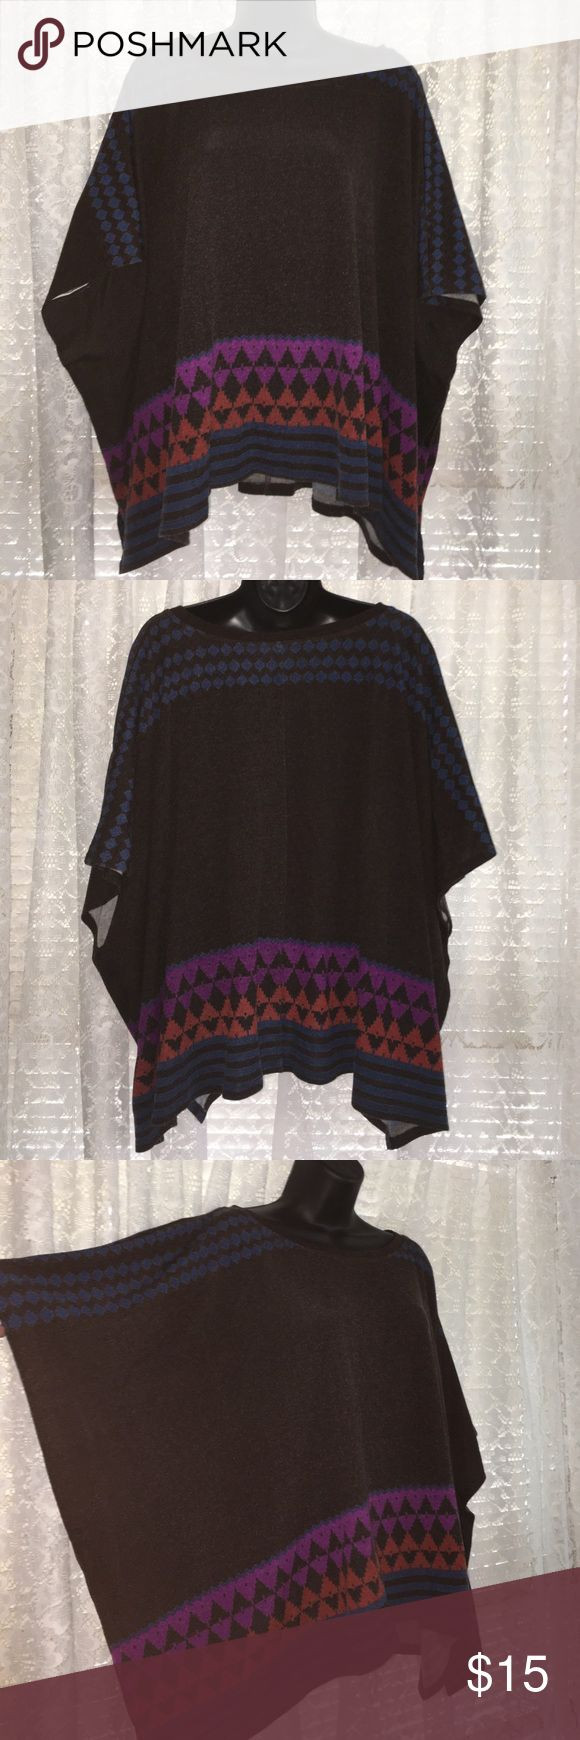 Aztec Print Batwing Top Brown top with aztec print along the hemline and across the shoulder and sleeve. Batwing style. No pulls,  no stains, no rips. slight pilling. Tops